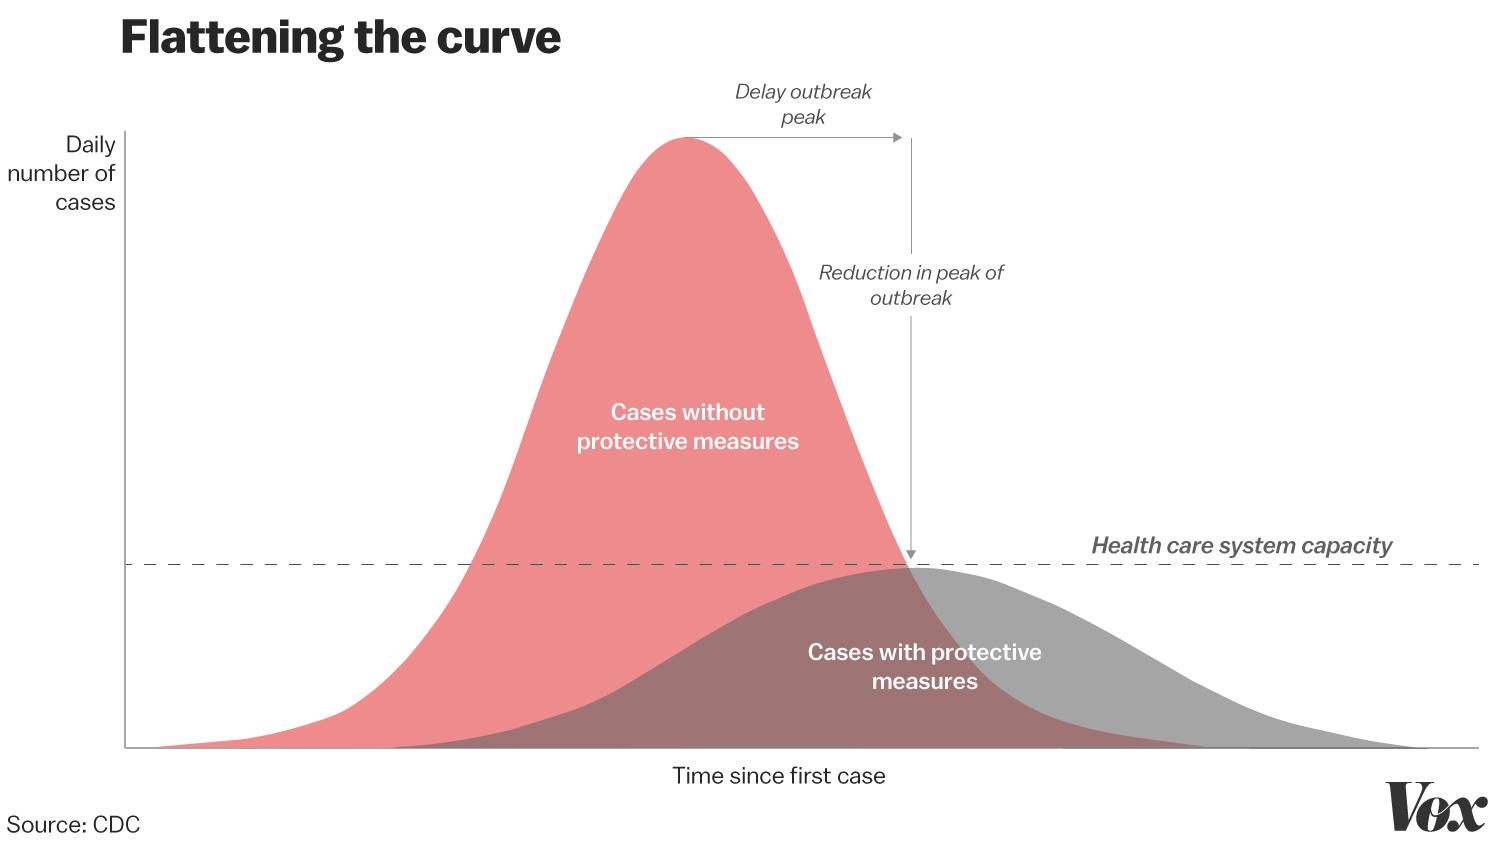 Flattening the Curve to Covid19